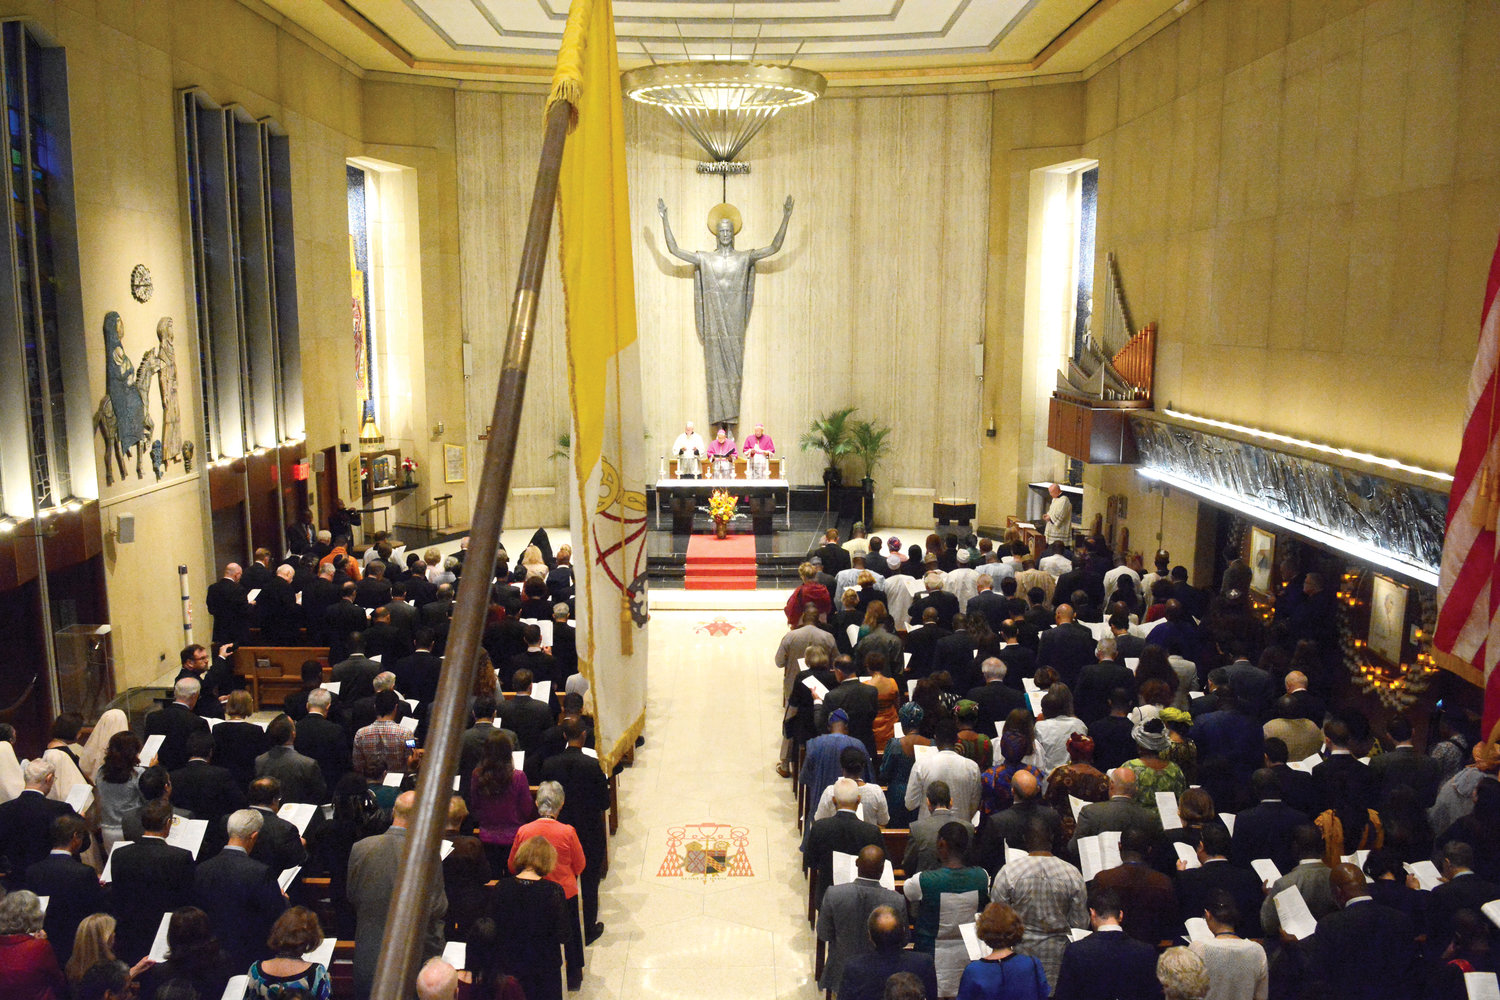 The annual liturgy is sponsored by the Vatican's Permanent Observer Mission of the Holy See to the United Nations.